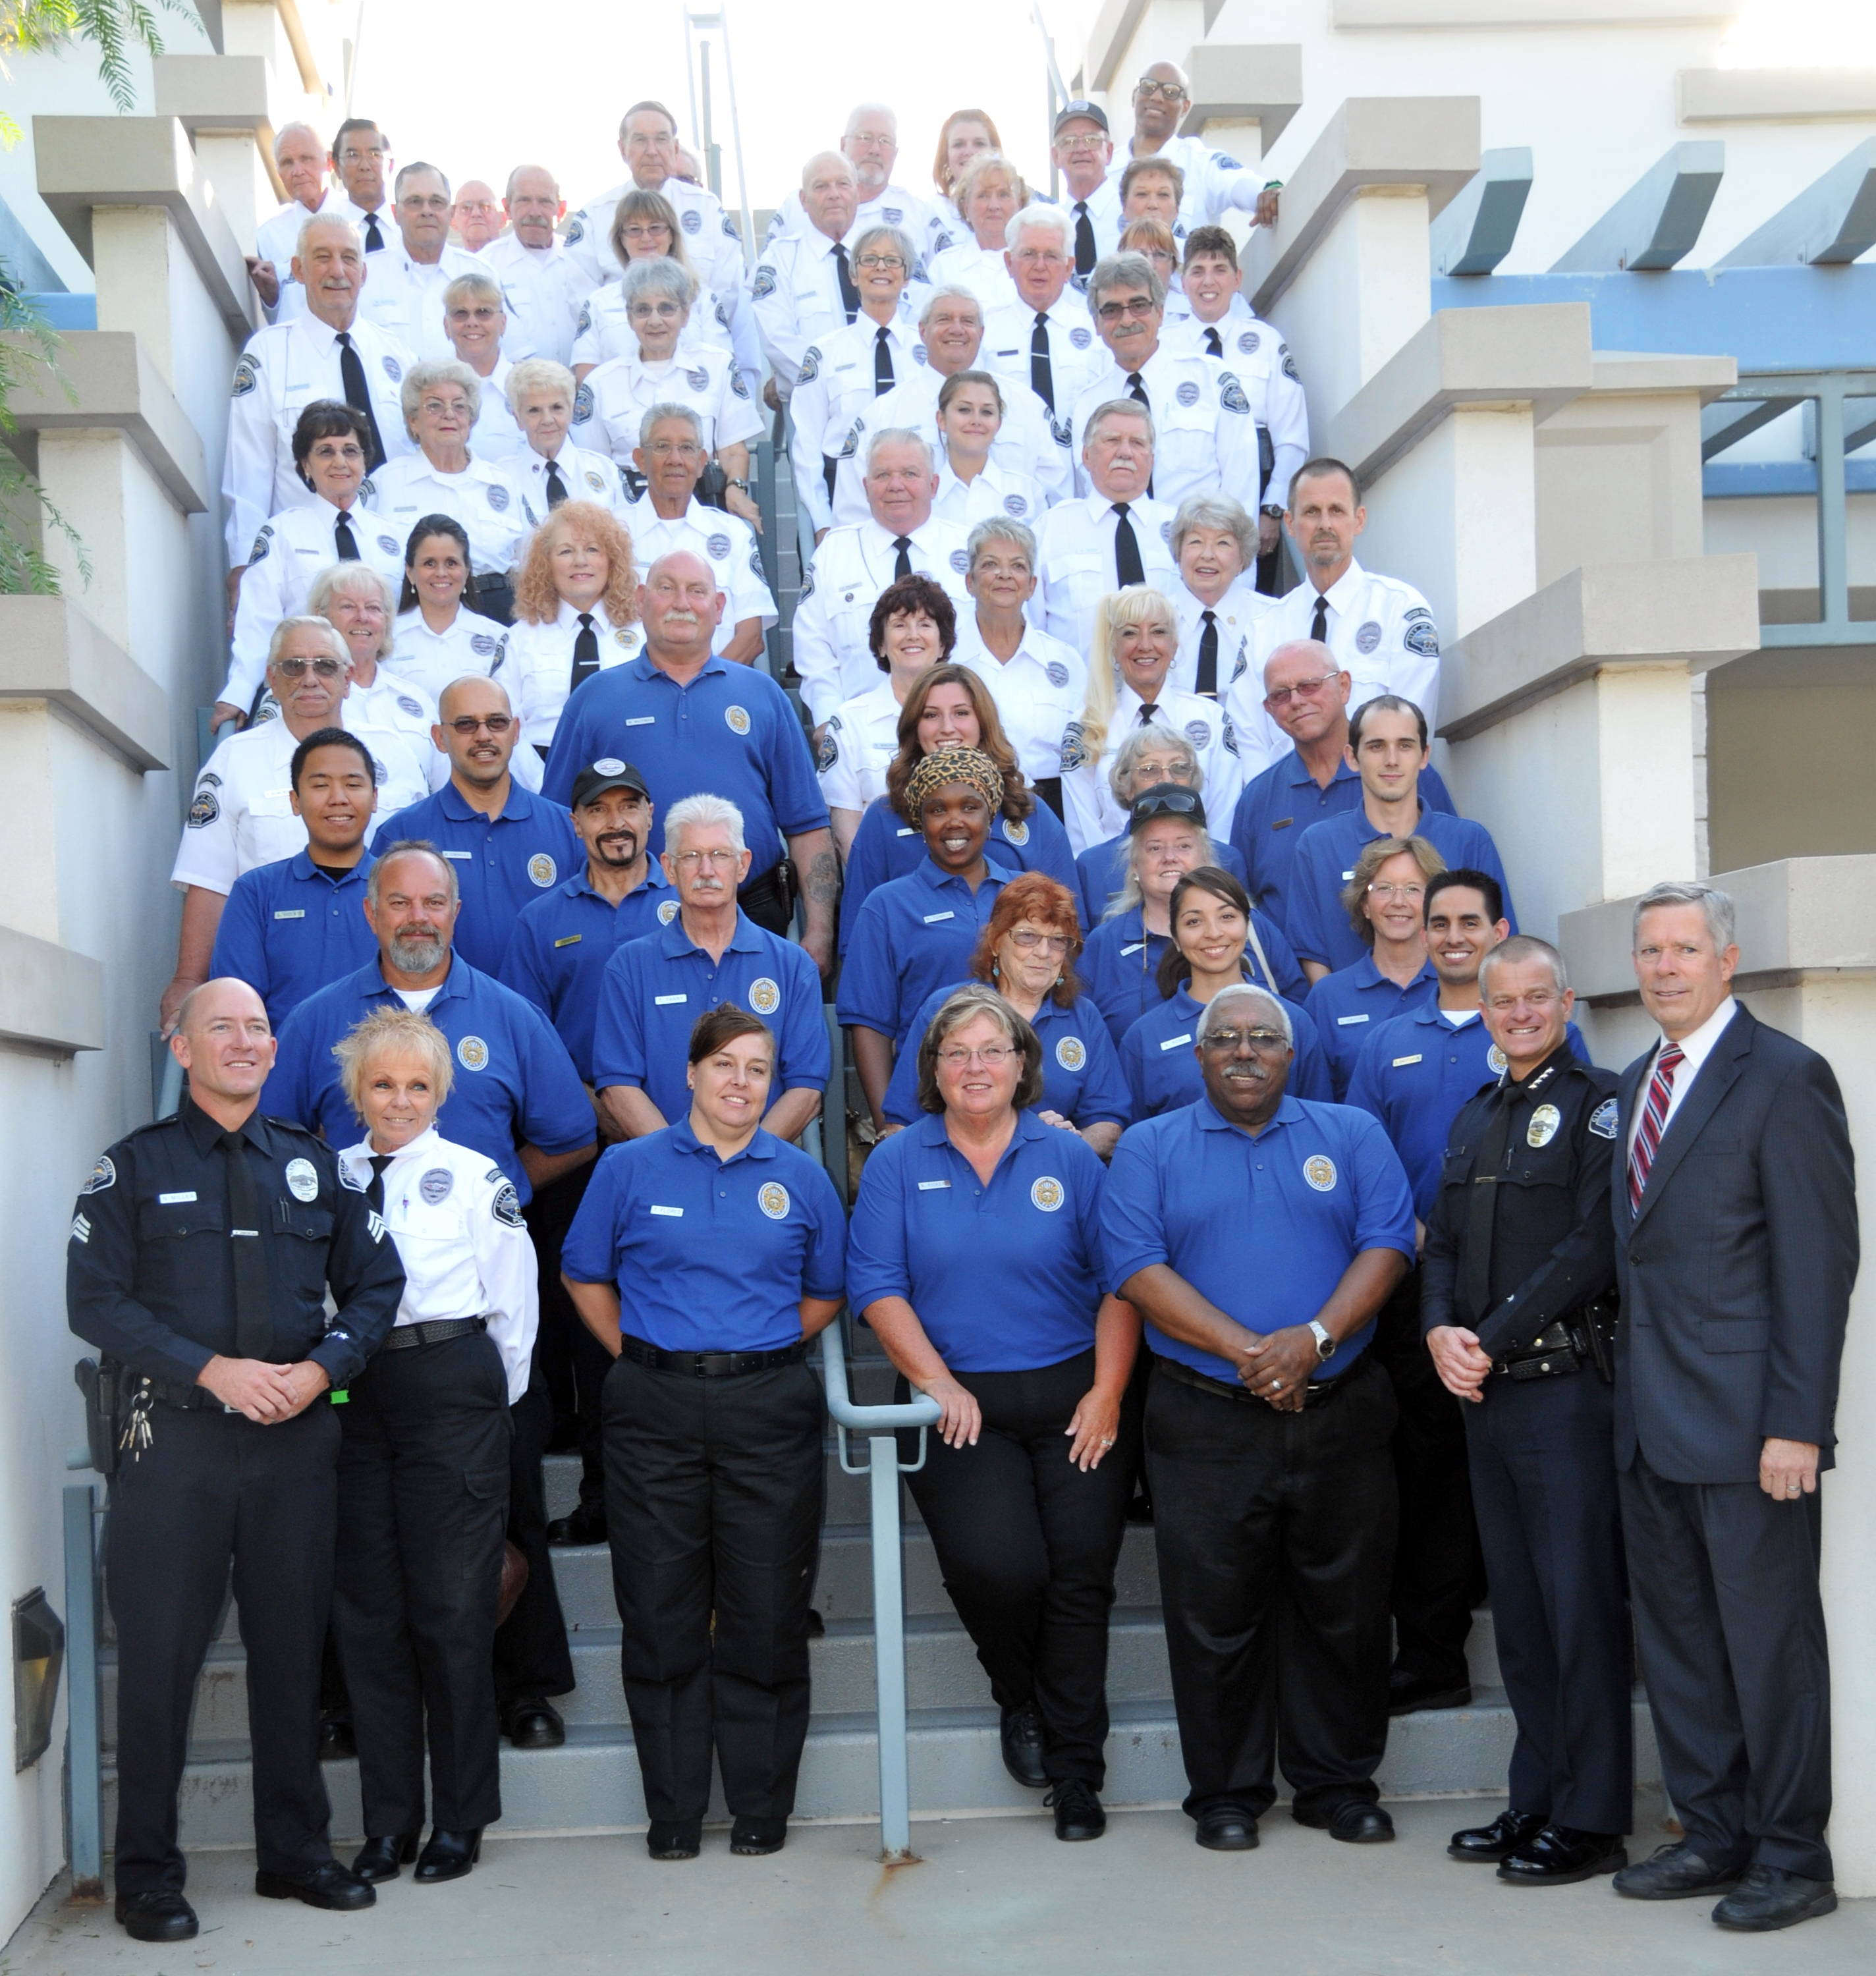 Hemet Police Volunteers 2013